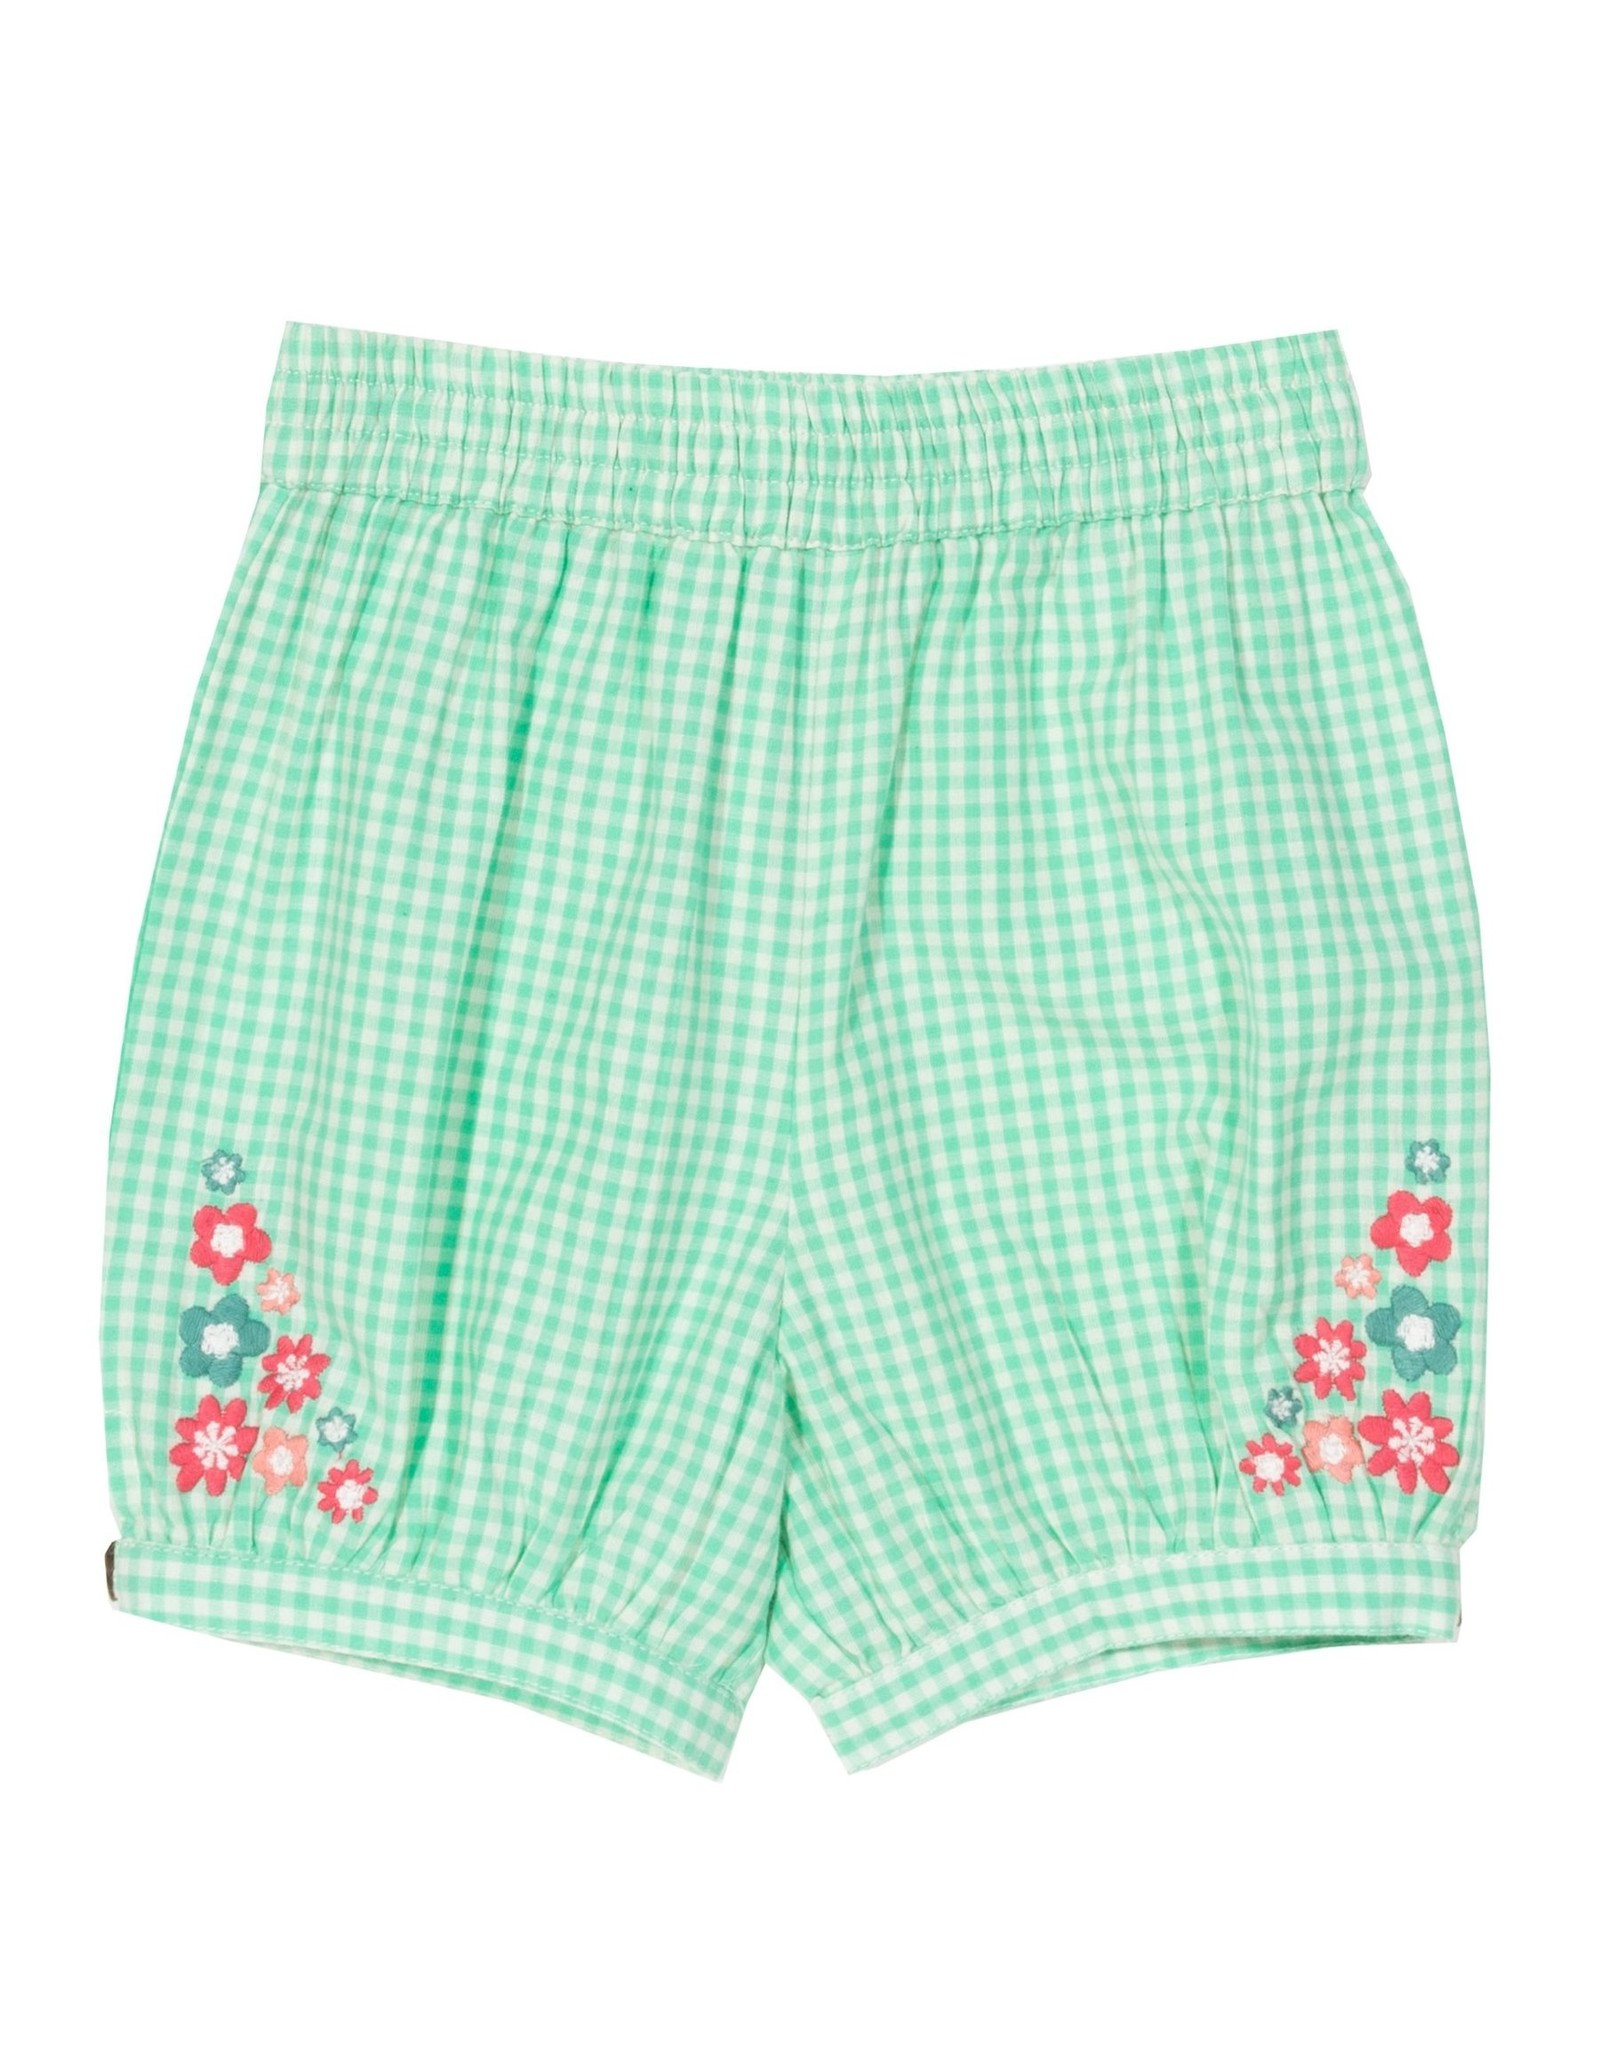 Kite Clothing Gingham Bloomers